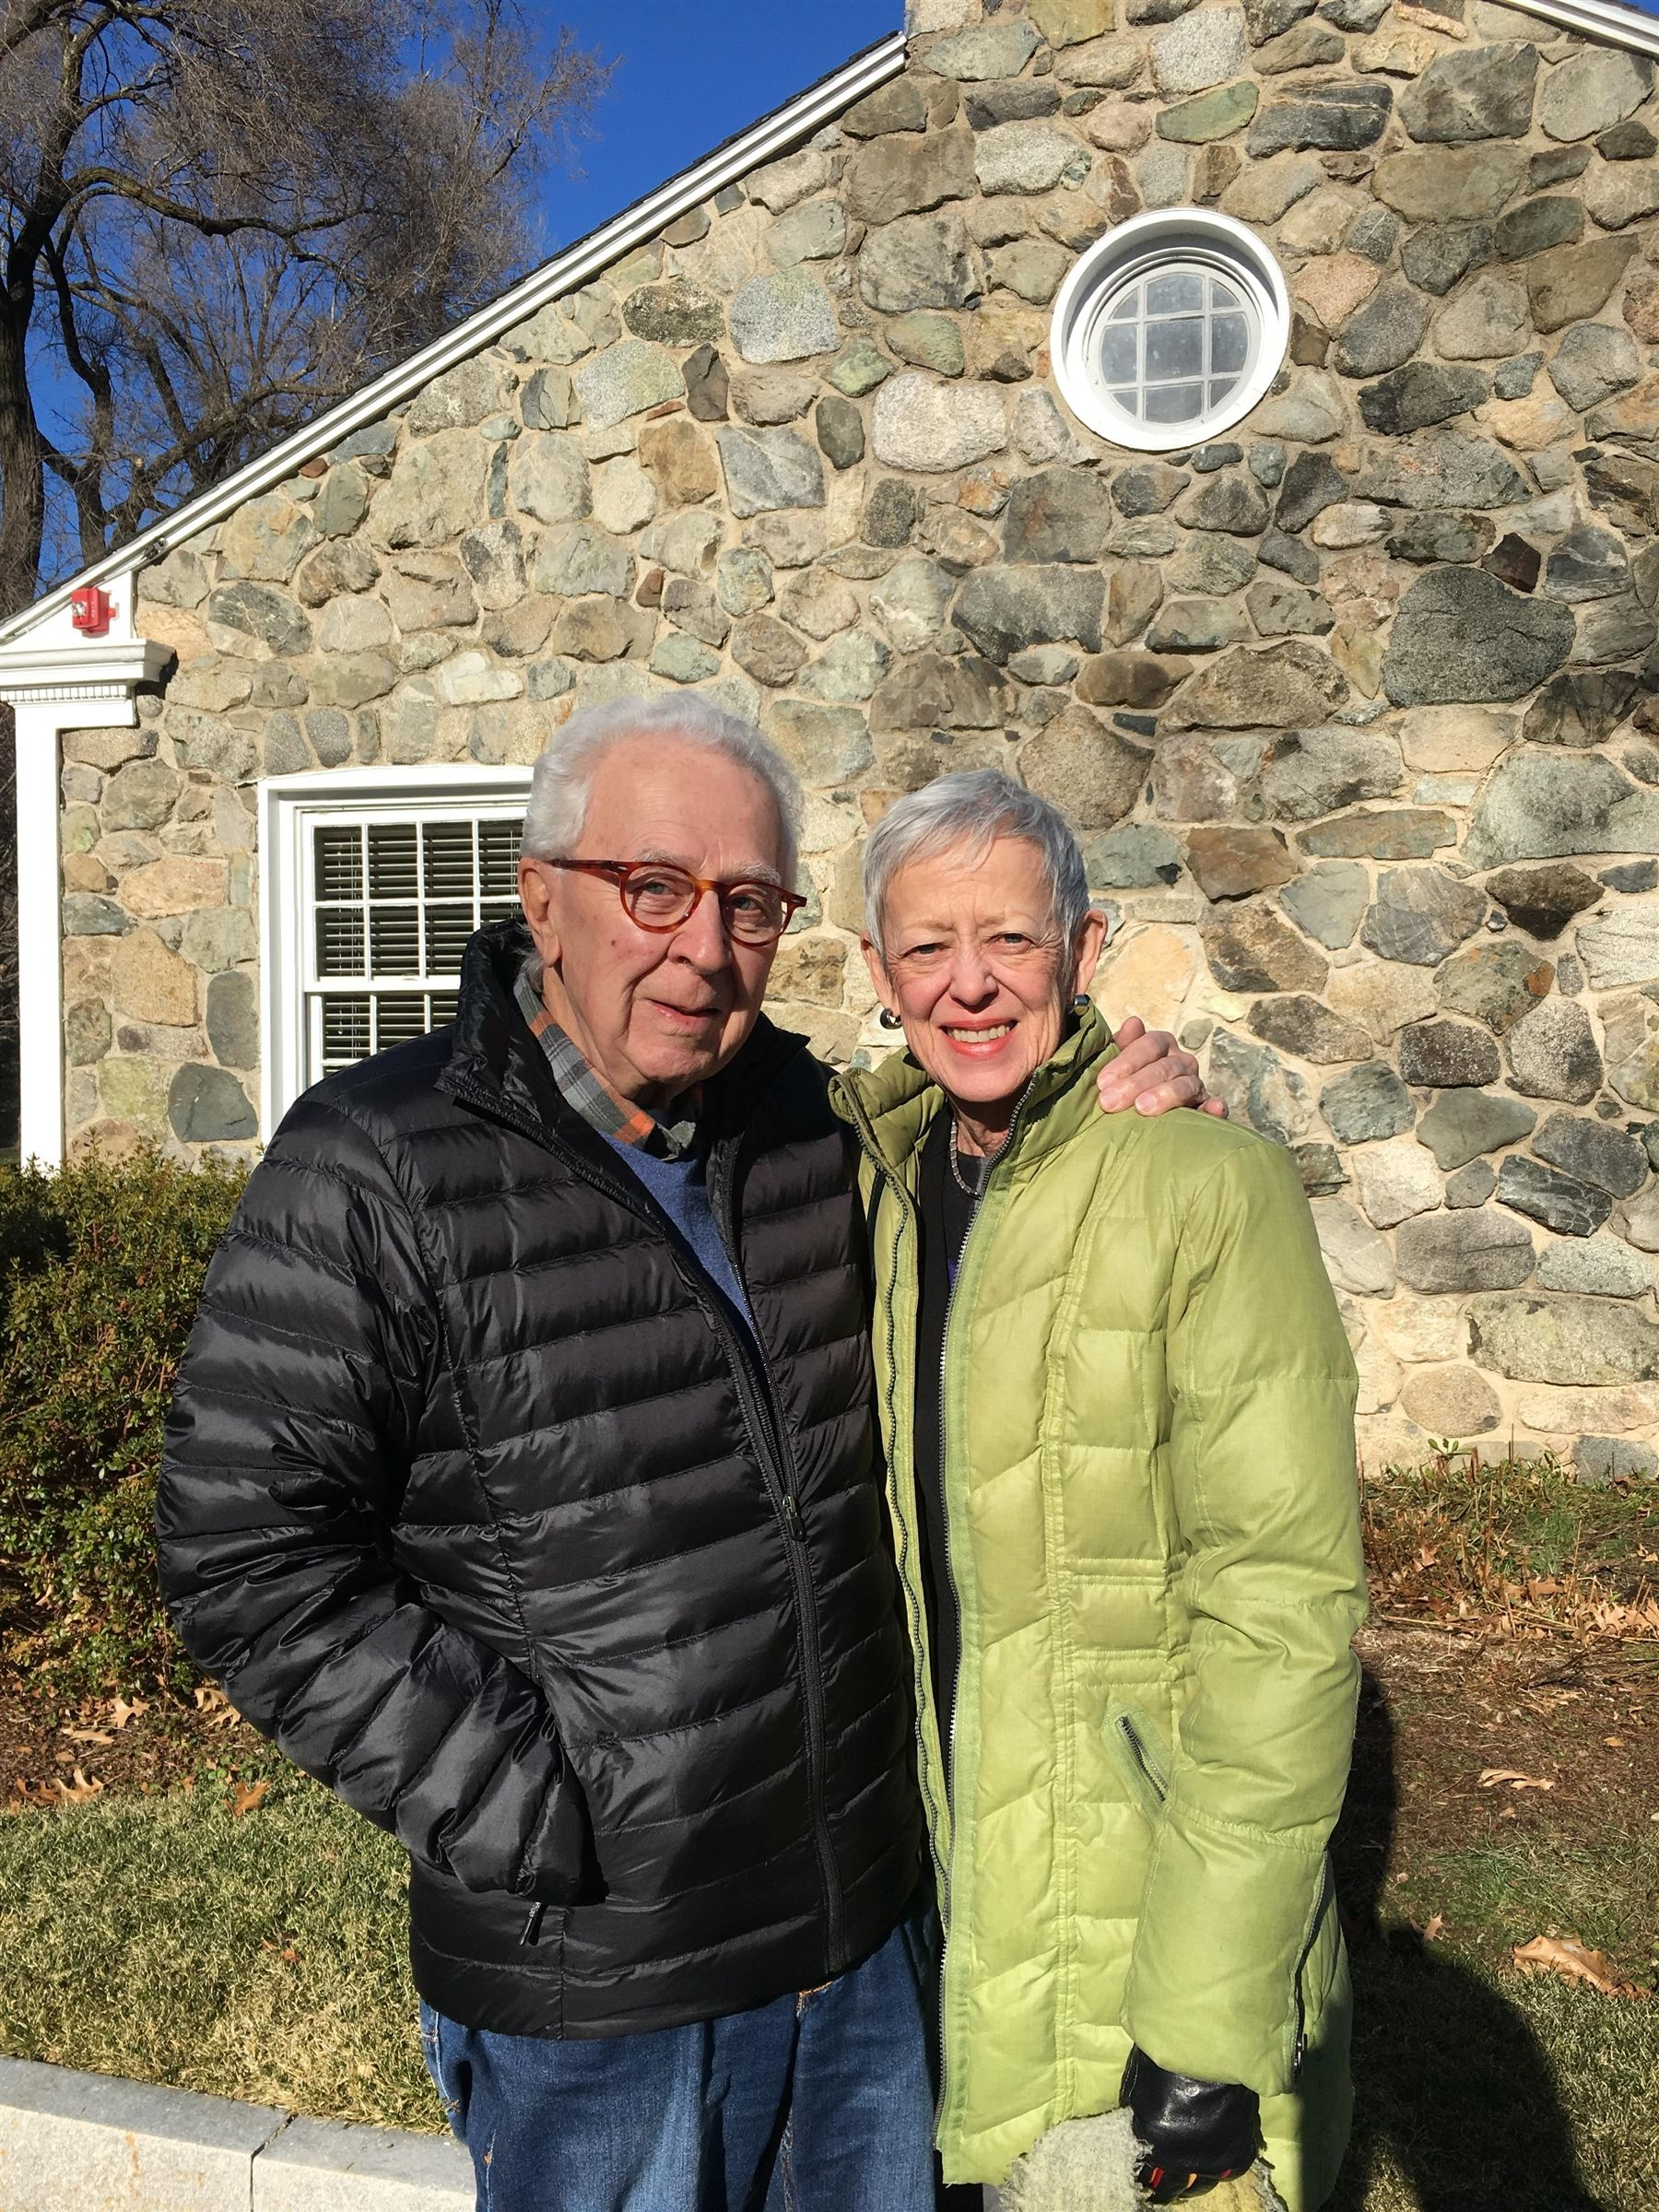 Paul Repetto '54 and his wife, Jan, visiting from Boulder, CO in December 2018.